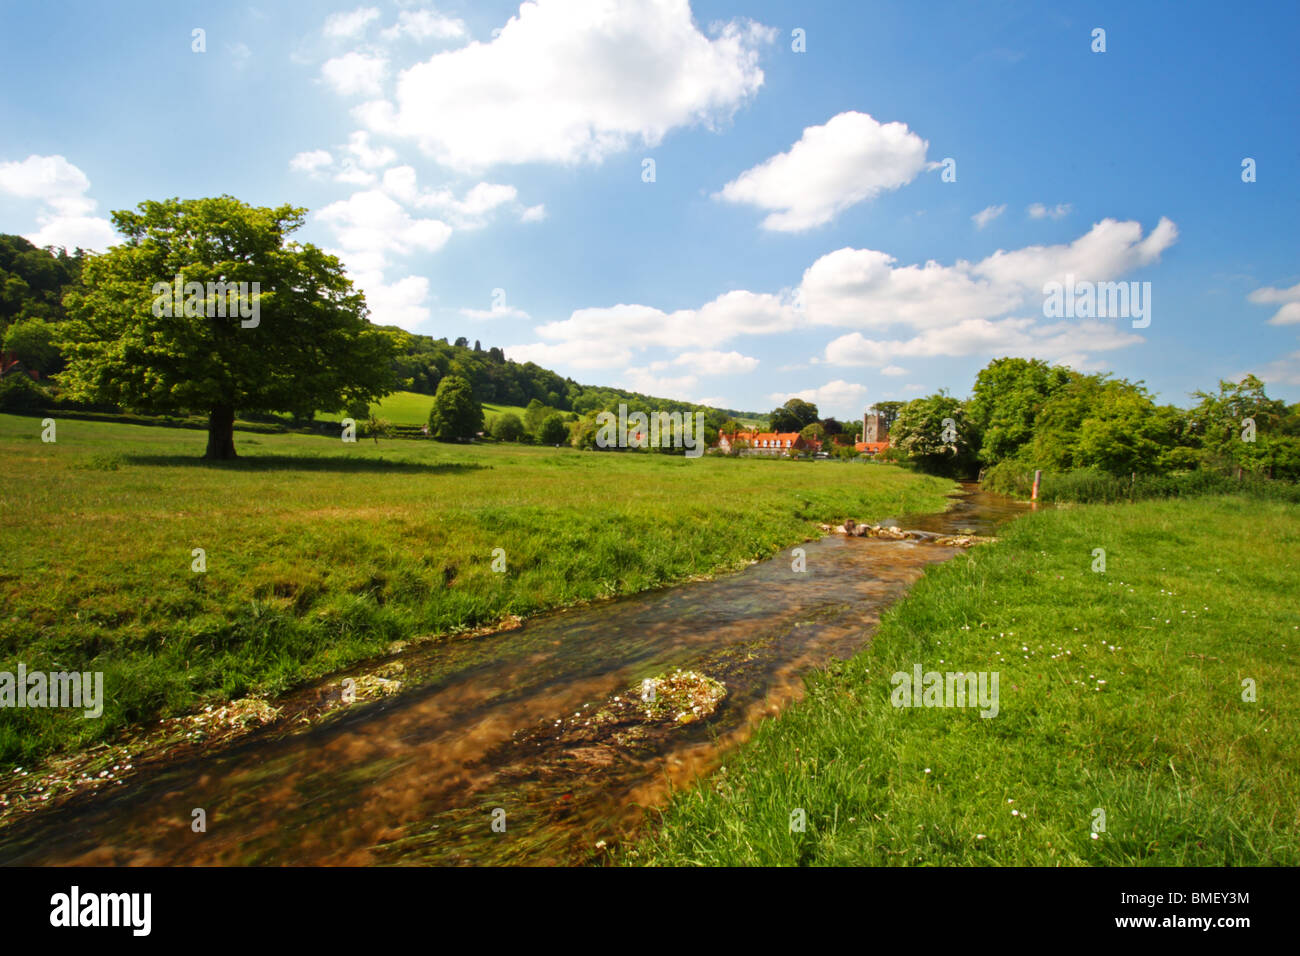 Hambleden Brook with Hambleden village in the background. Buckinghamshire, United Kingdom - Stock Image